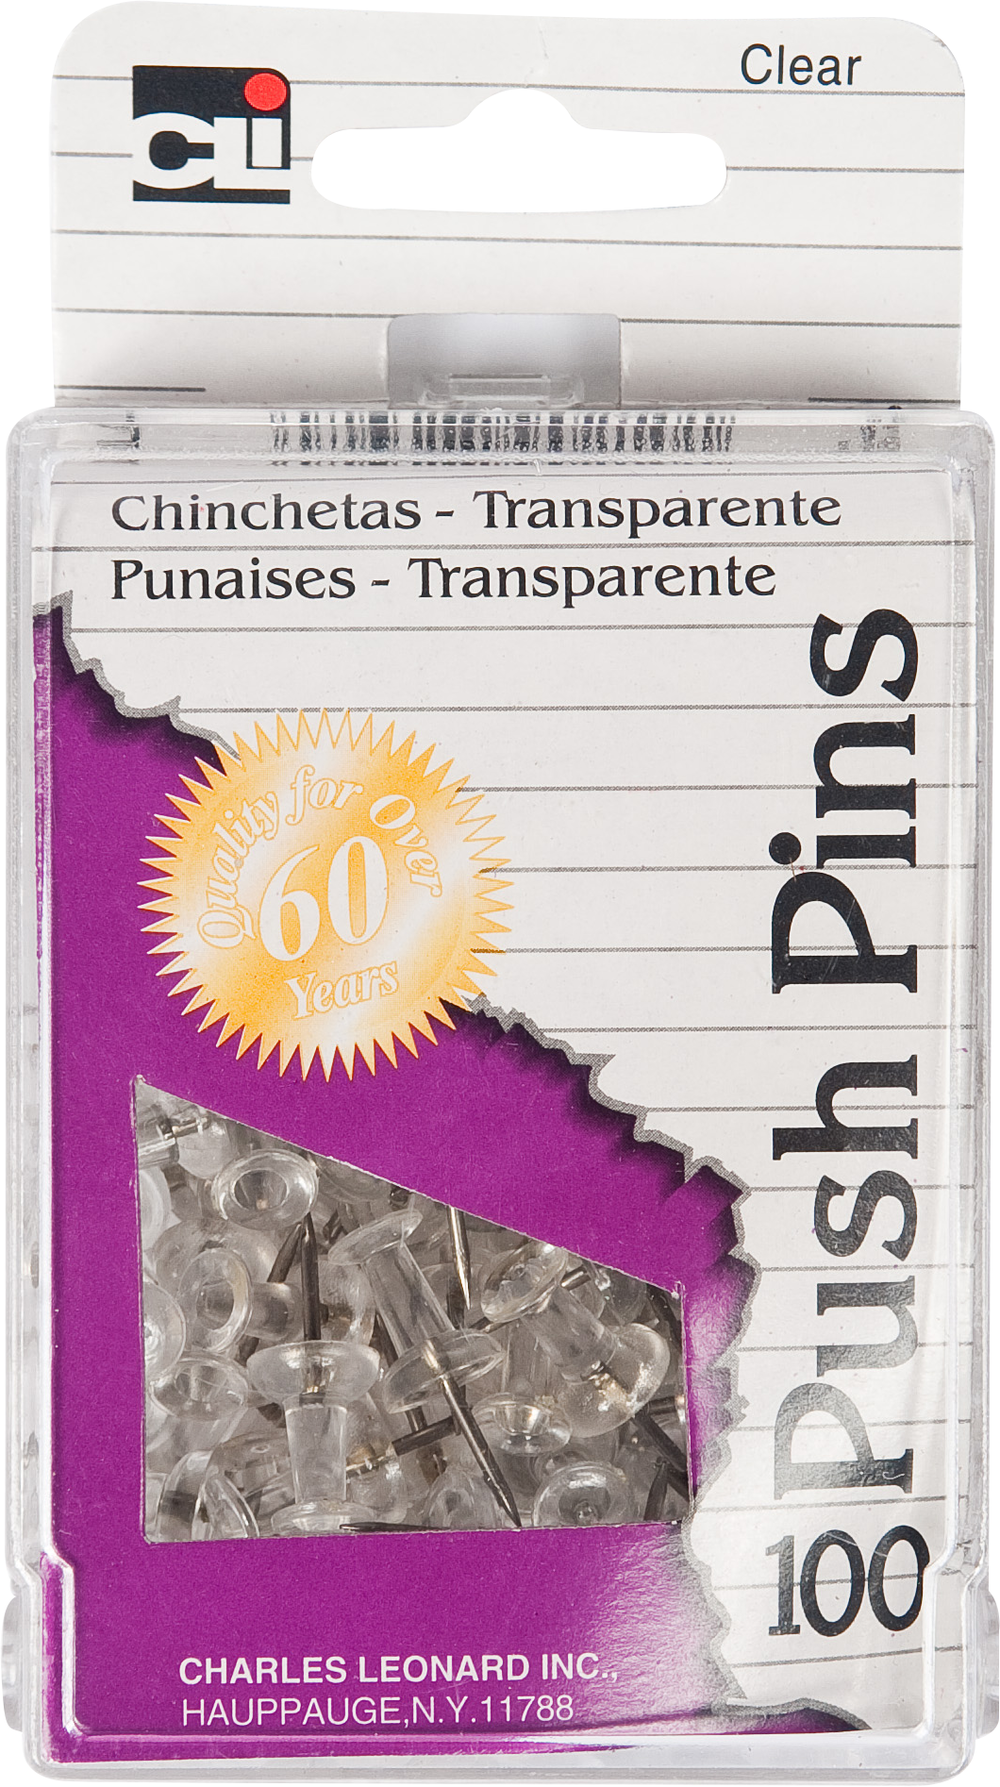 Charles Leonard Push Pins - Clear .44in 100Ct Box Reusable Box